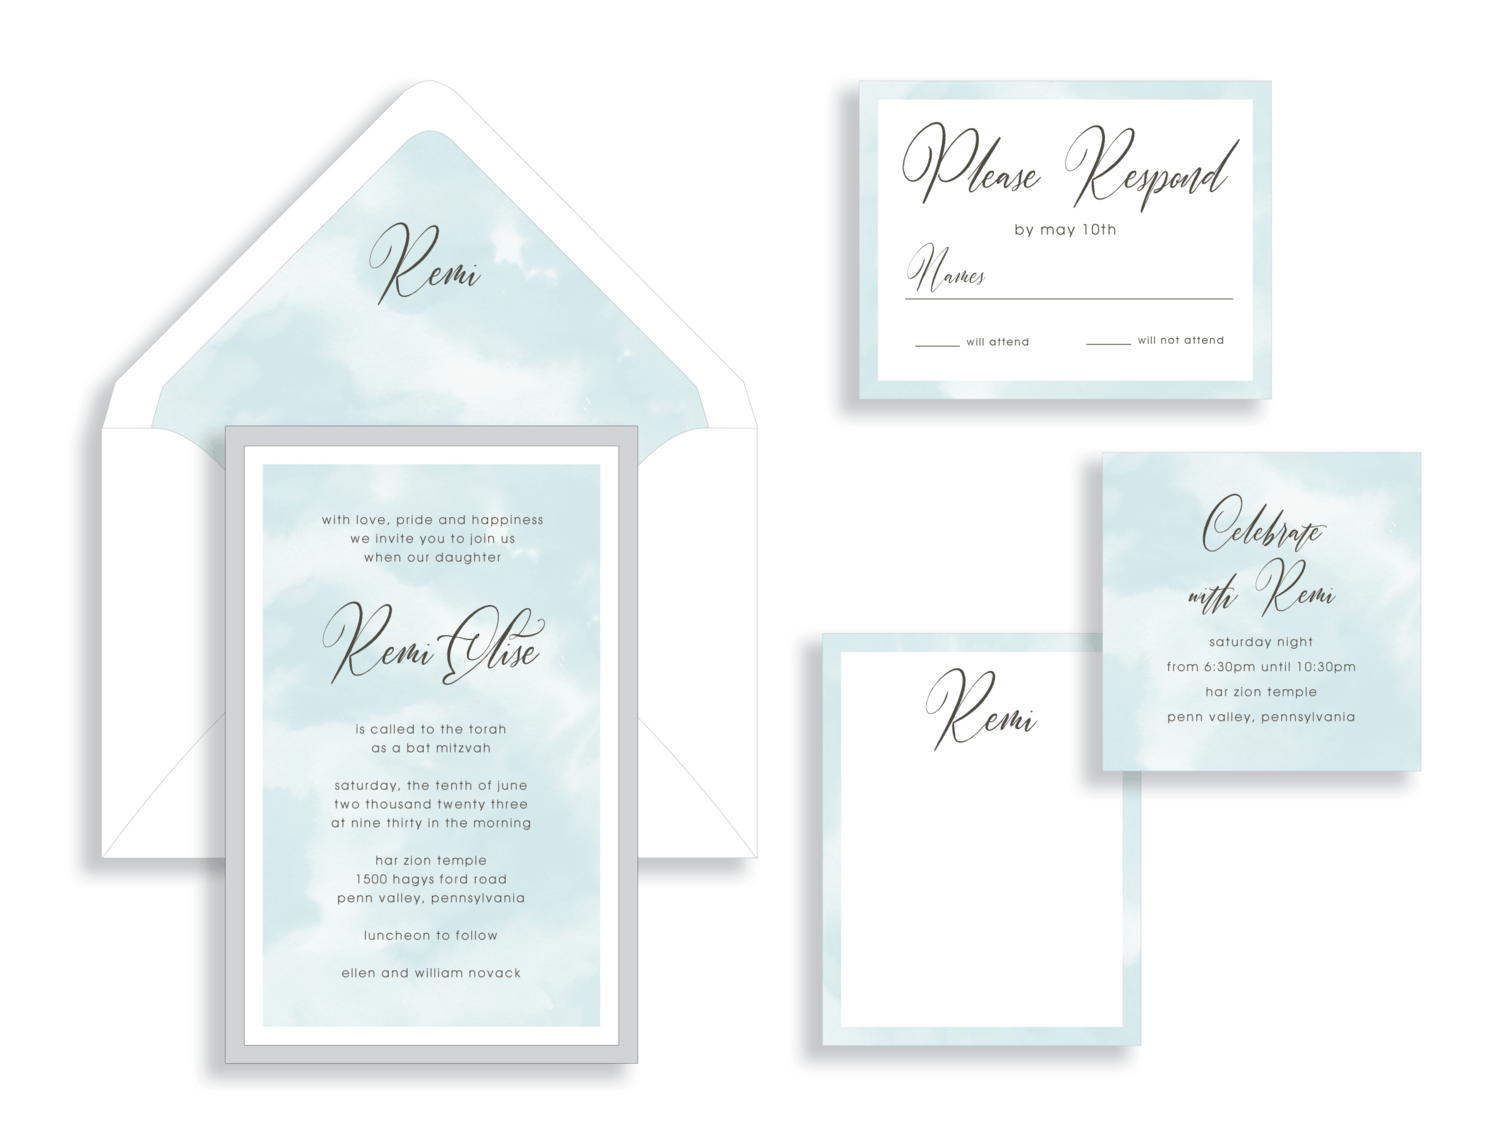 Remi aqua watercolor and silver bat mitzvah invitation in Fairfax Virginia from Staccato with personalized service, great selection!